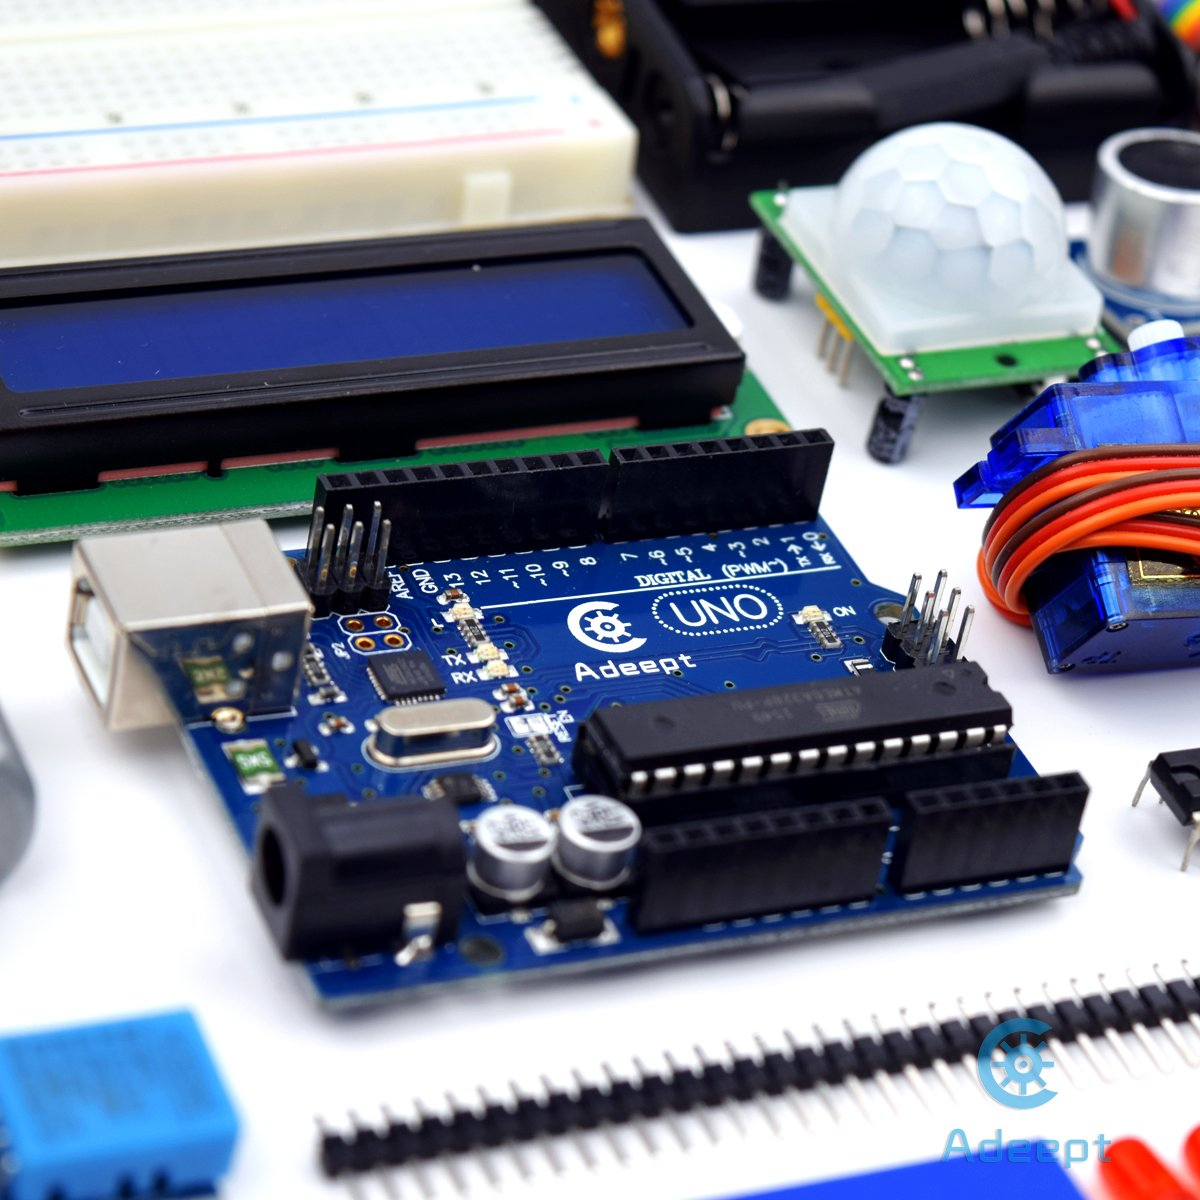 Relay Beginner Starter Kit with 140 Pages Guidebook//Instructions Book LCD1602 Servo Motor Adeept Ultimate Starter Kit for Arduino UNO R3 Processing and C Code